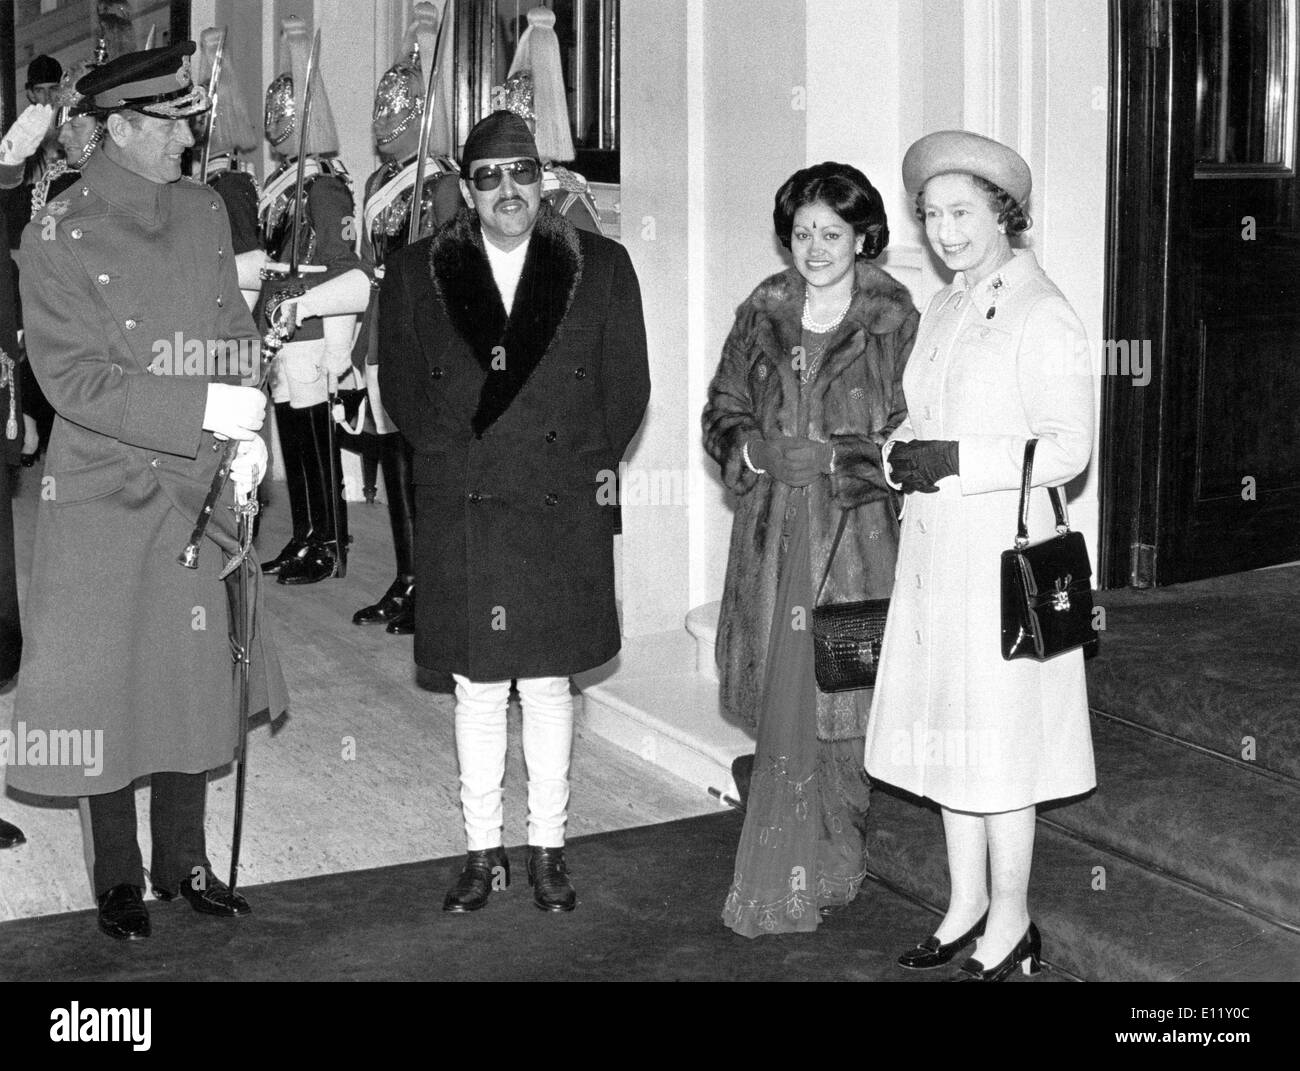 Elizabeth II and Prince Philip with Nepal royals - Stock Image